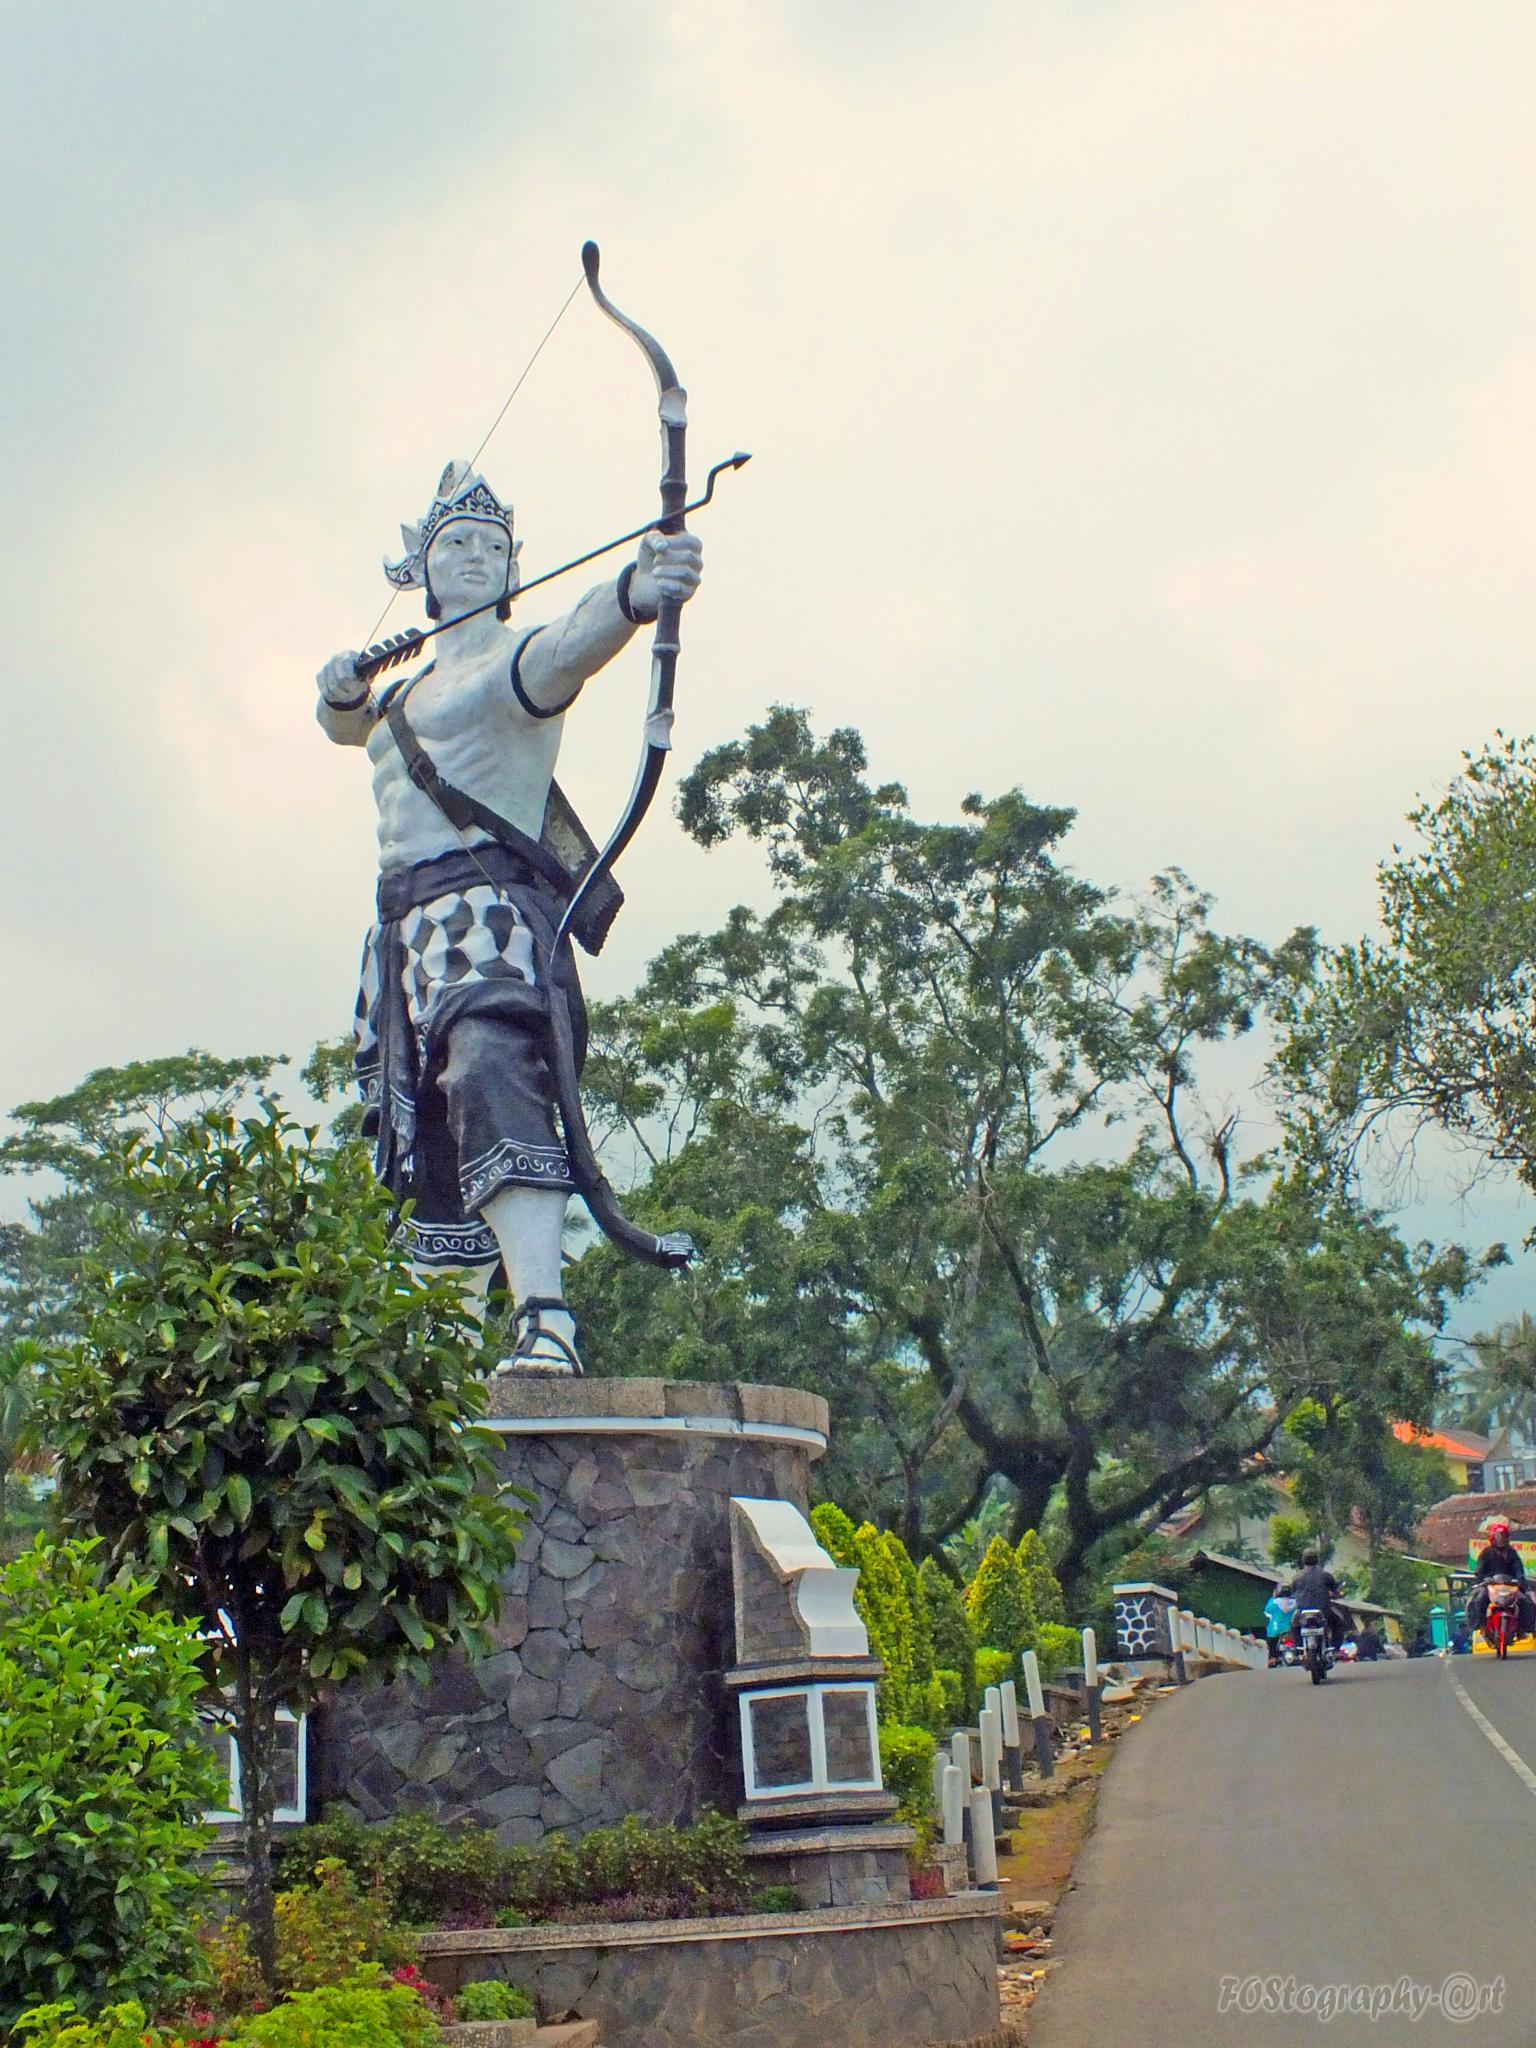 A statue being archery on the roadside by Firman OS